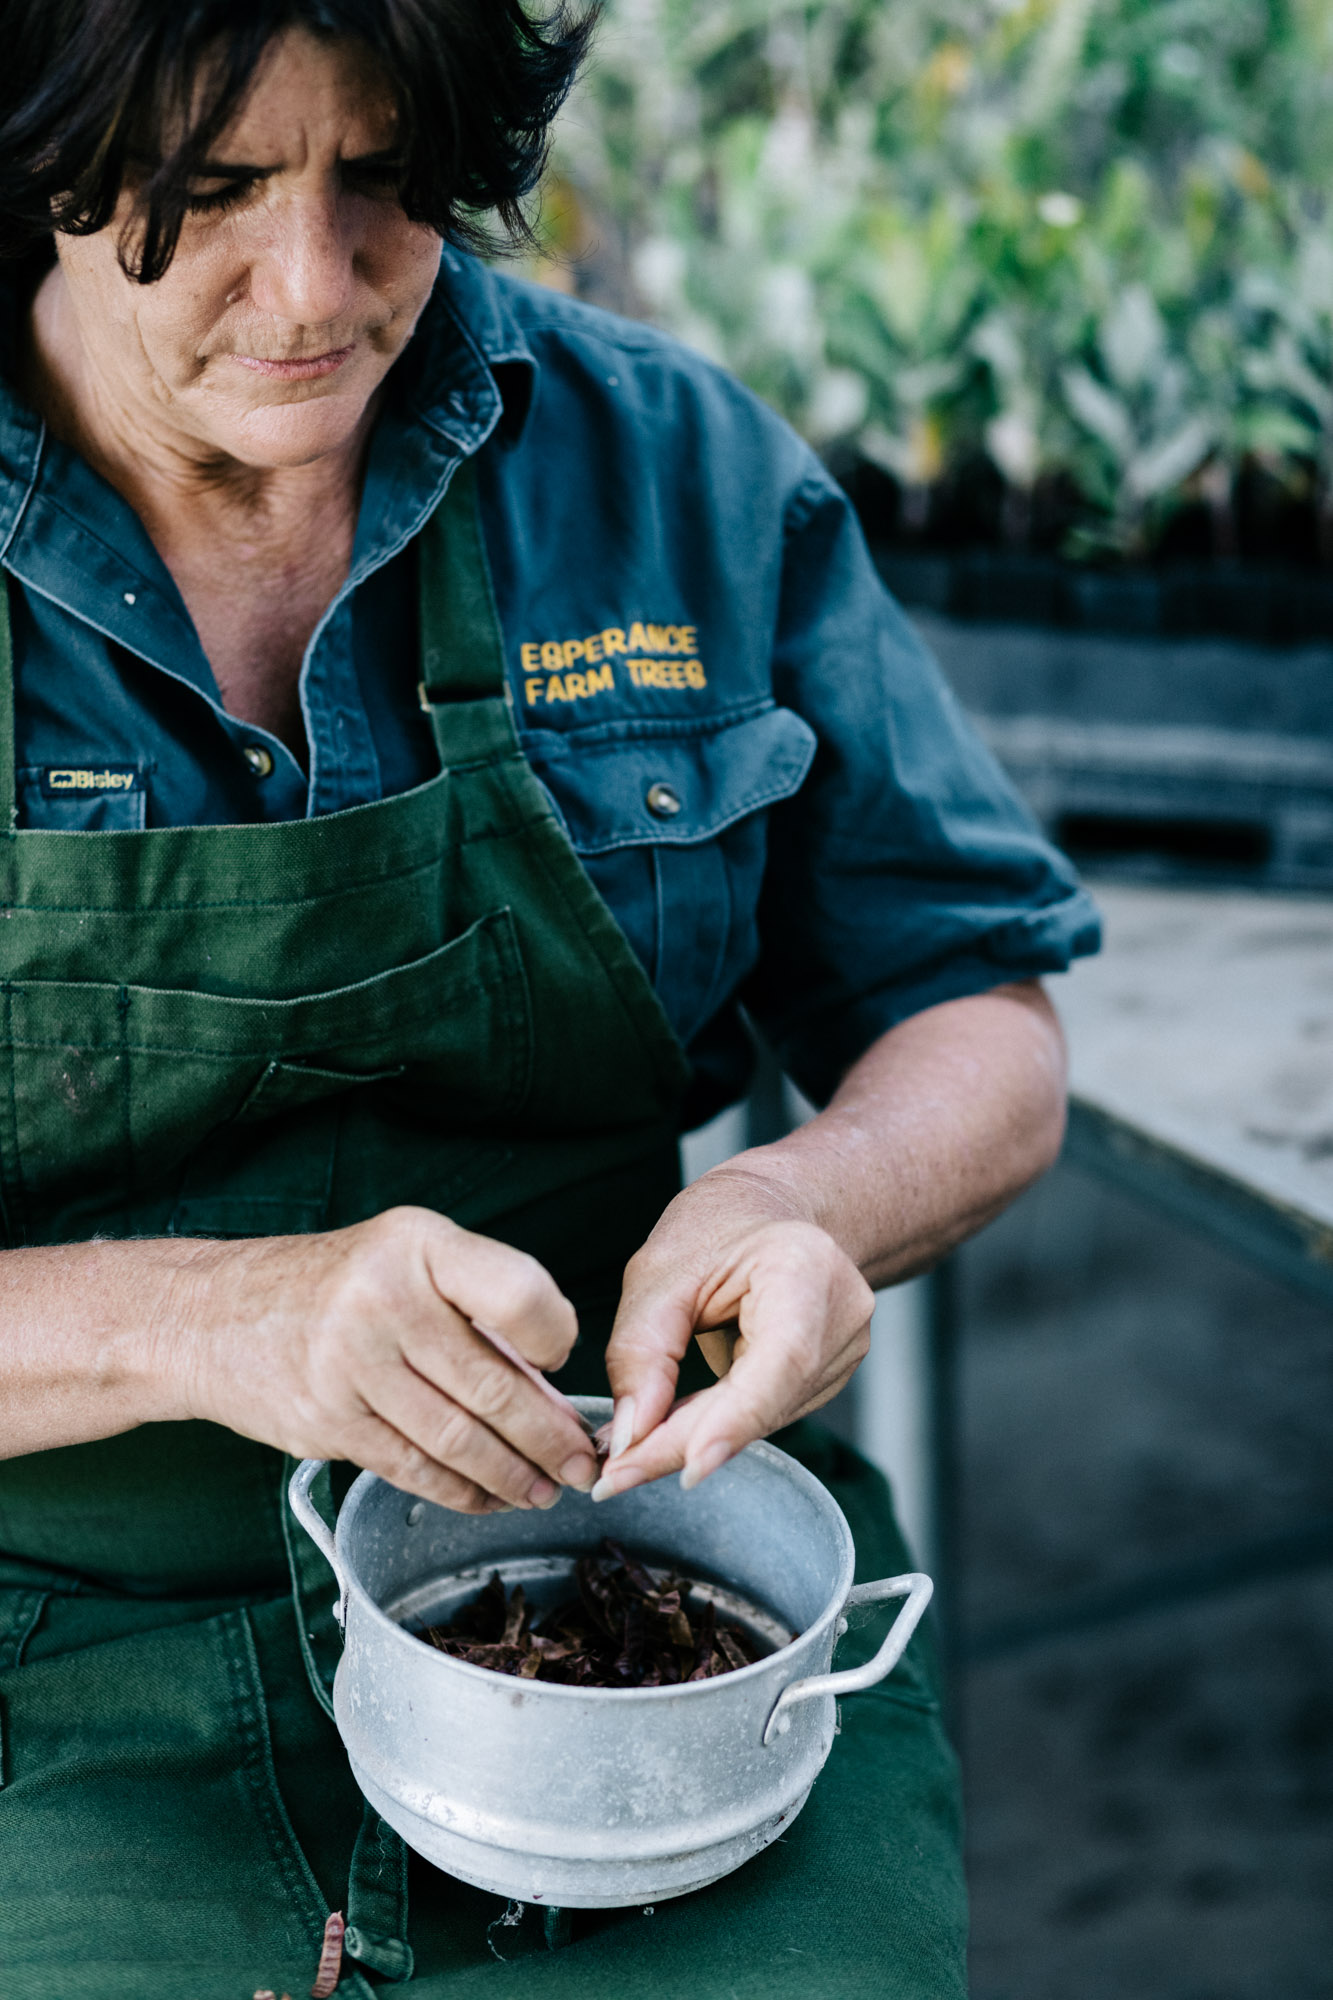 Marnie Hawson, Melbourne lifestyle photography, for Esperance Farm Trees and Country Style